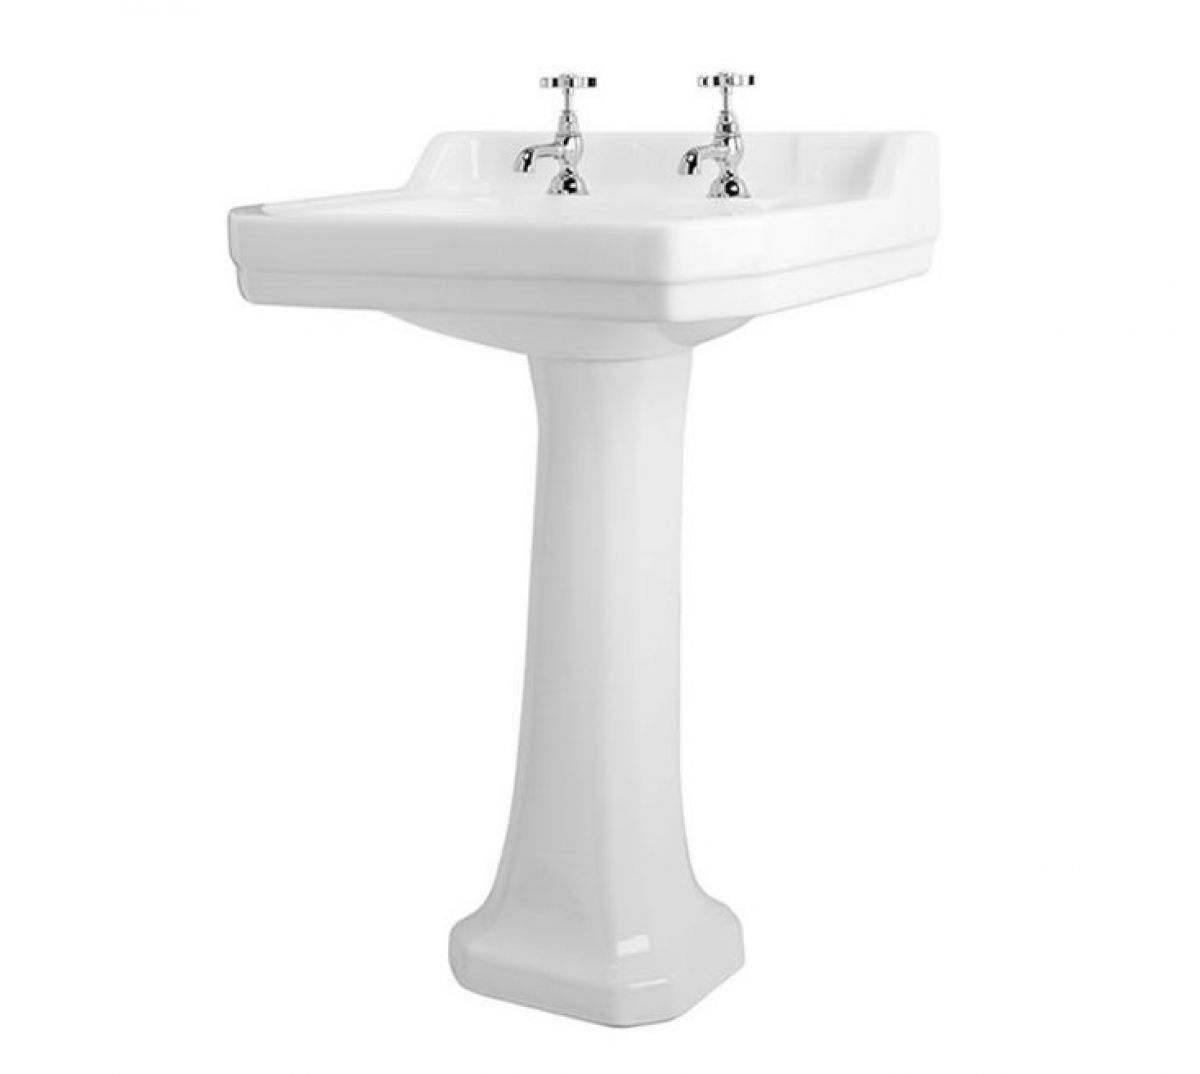 Traditional bathroom sink - Find This Pin And More On Tinagroo Pedestal Sinks